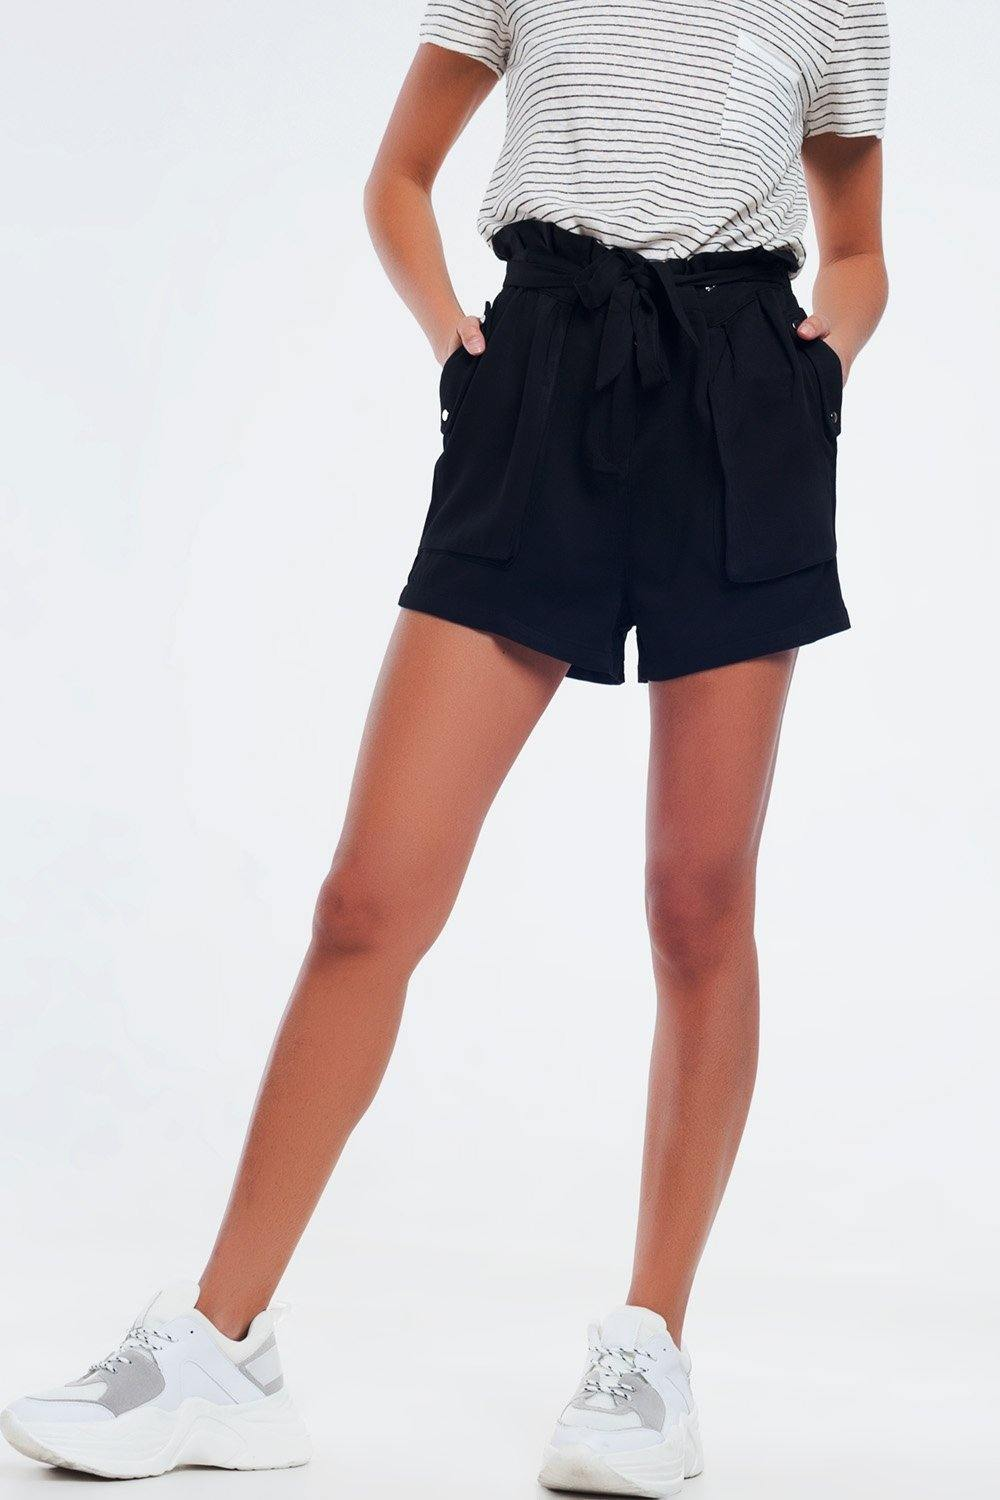 Q2 Black twill shorts with stretch waist and tie front detail